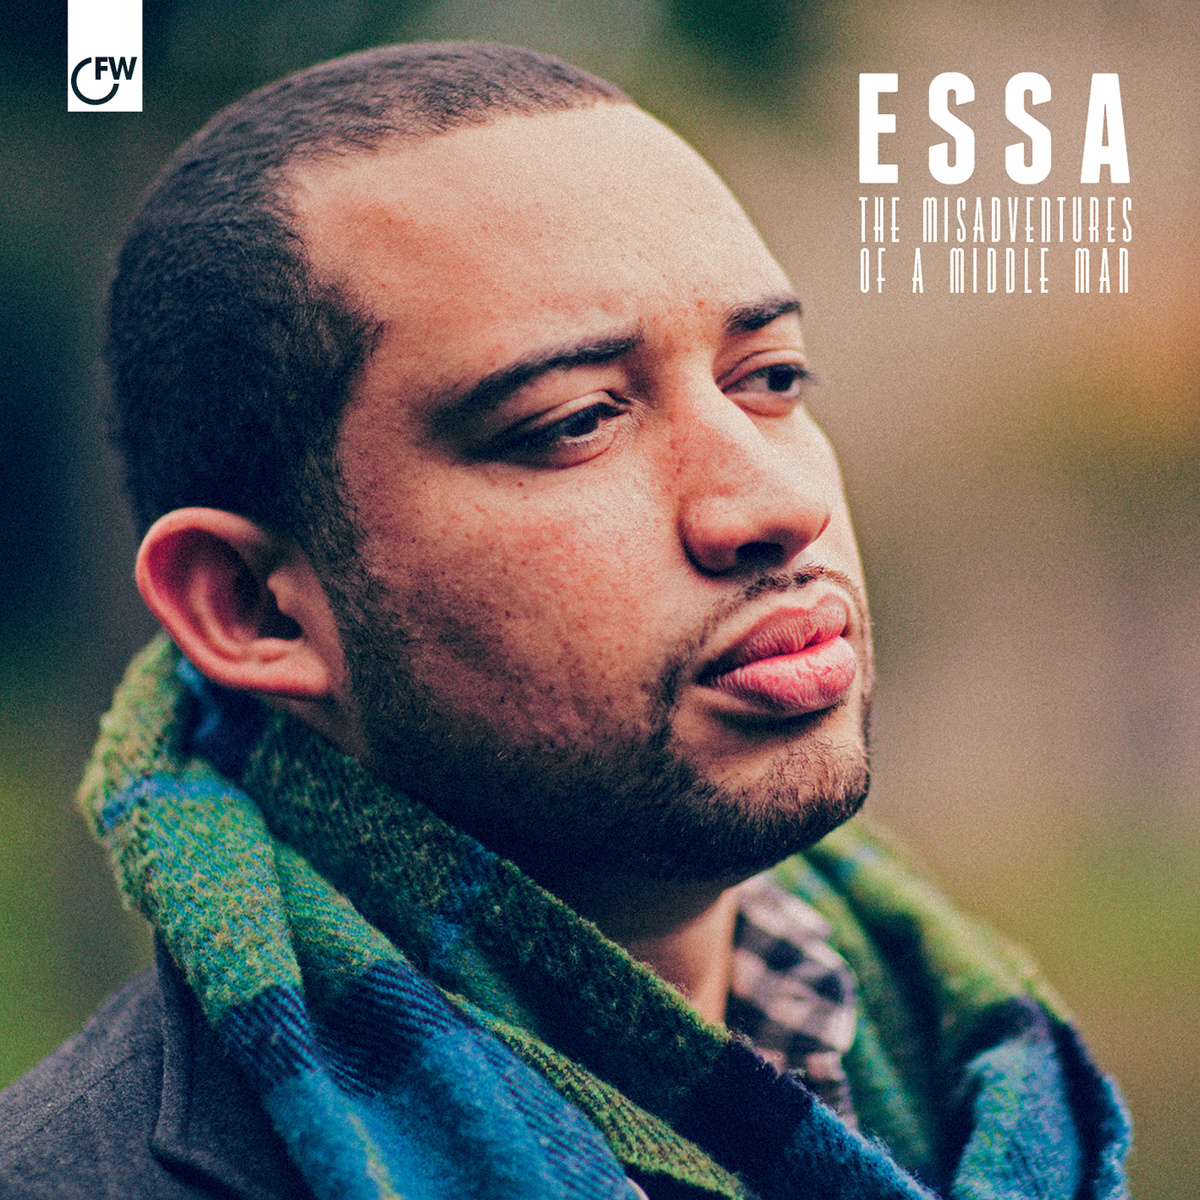 Essa - The Misadventures Of A Middle Man